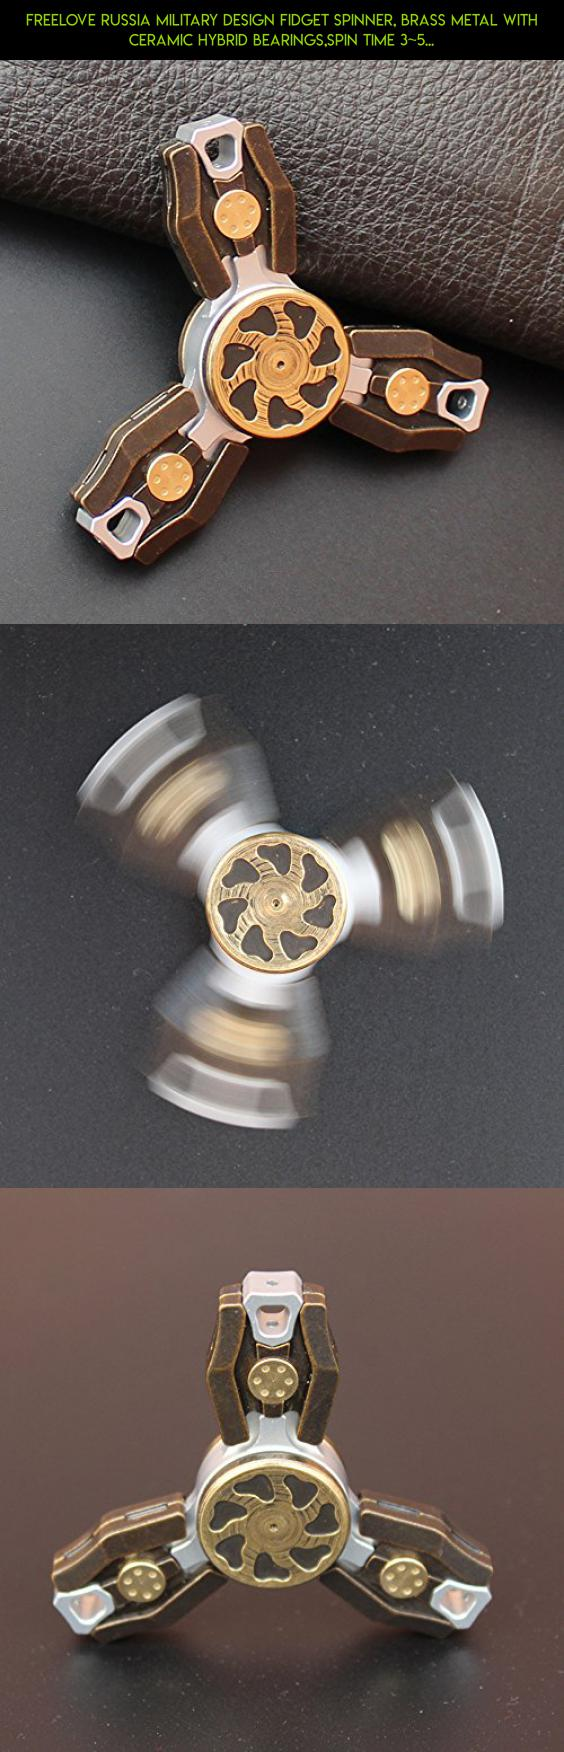 FREELOVE Russia Military Design Fidget Spinner, Brass Metal With Ceramic Hybrid Bearings,Spin Time 3~5 minutes,Premium EDC All Part Disassembly DIY Tritium Pipe (Dark Brown, Brass Military 3-Leaf) #shopping #camera #over #kit #parts #50 #racing #technology #gadgets #spinner #tech #products #metal #plans #drone #fpv